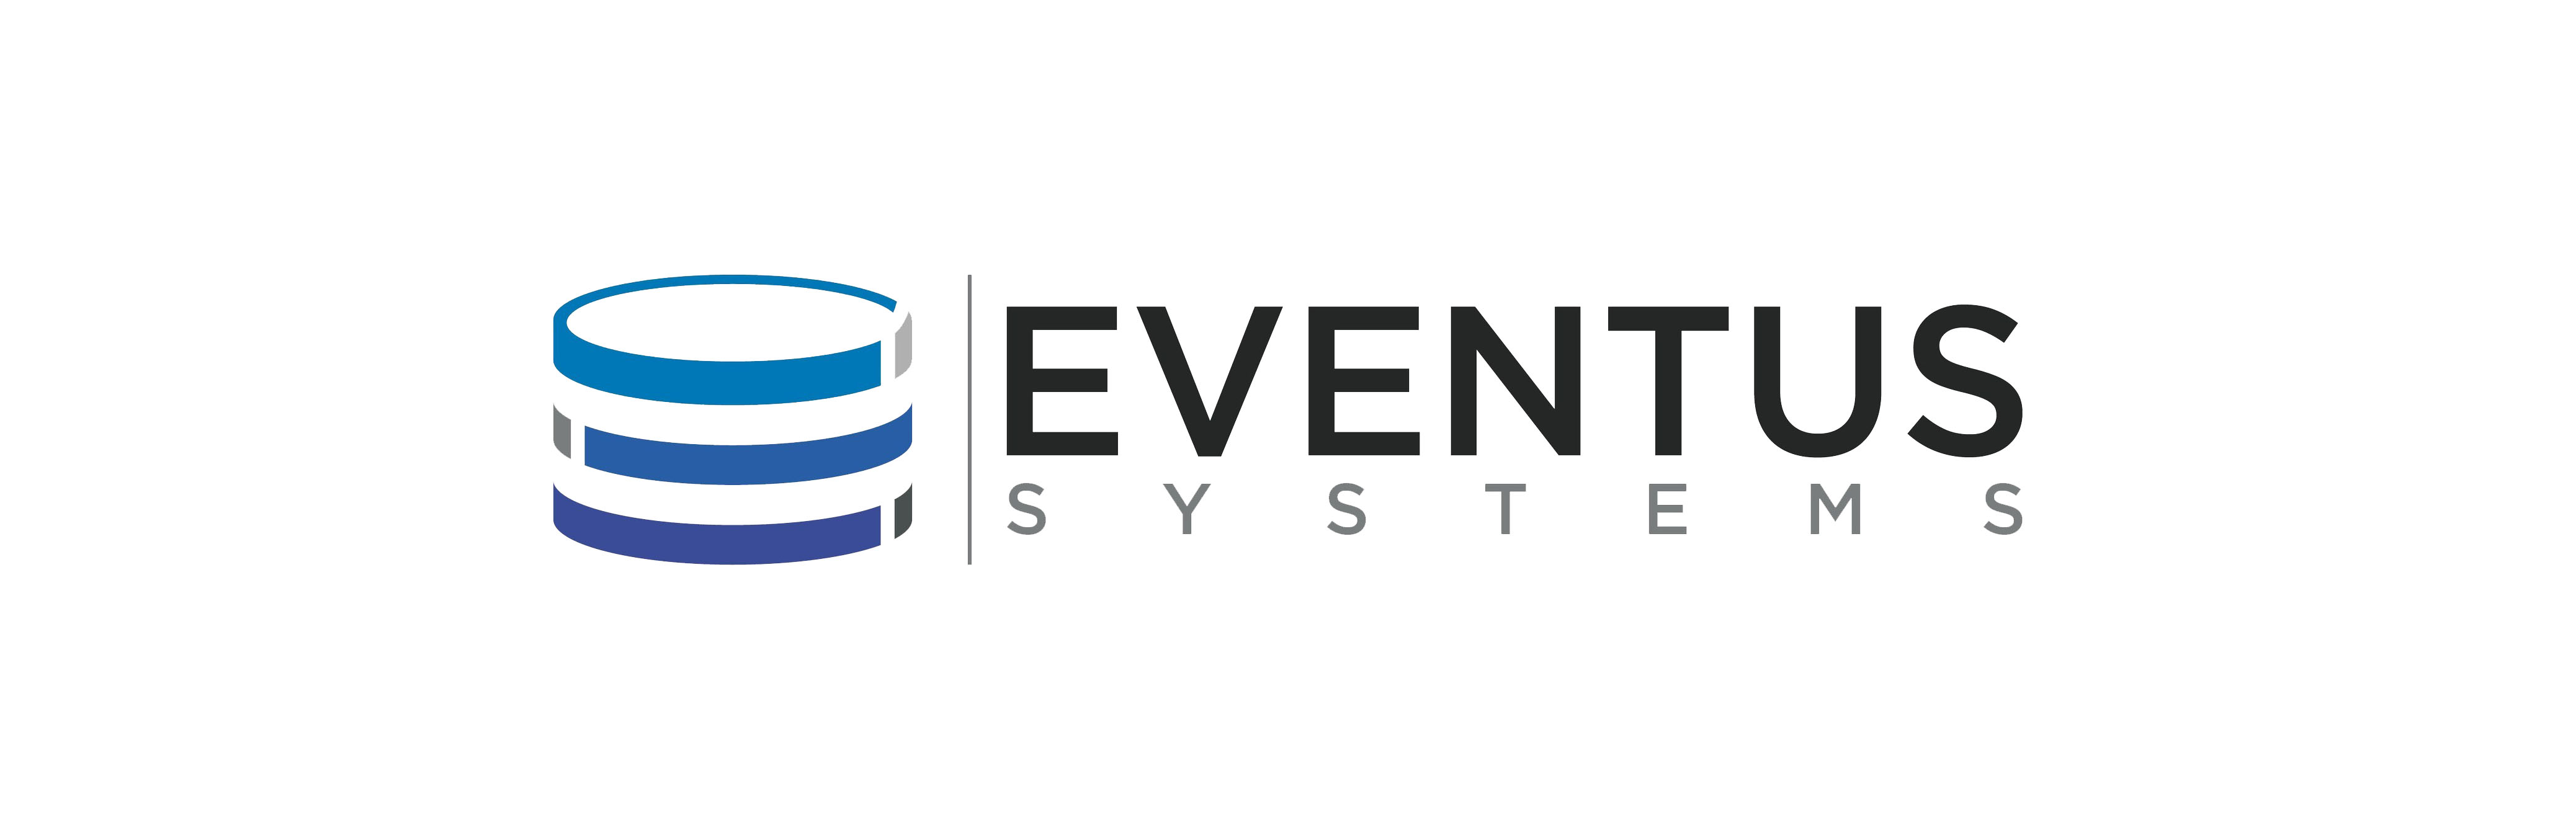 Eventus Systems Named to Global RegTech100 List for 2021